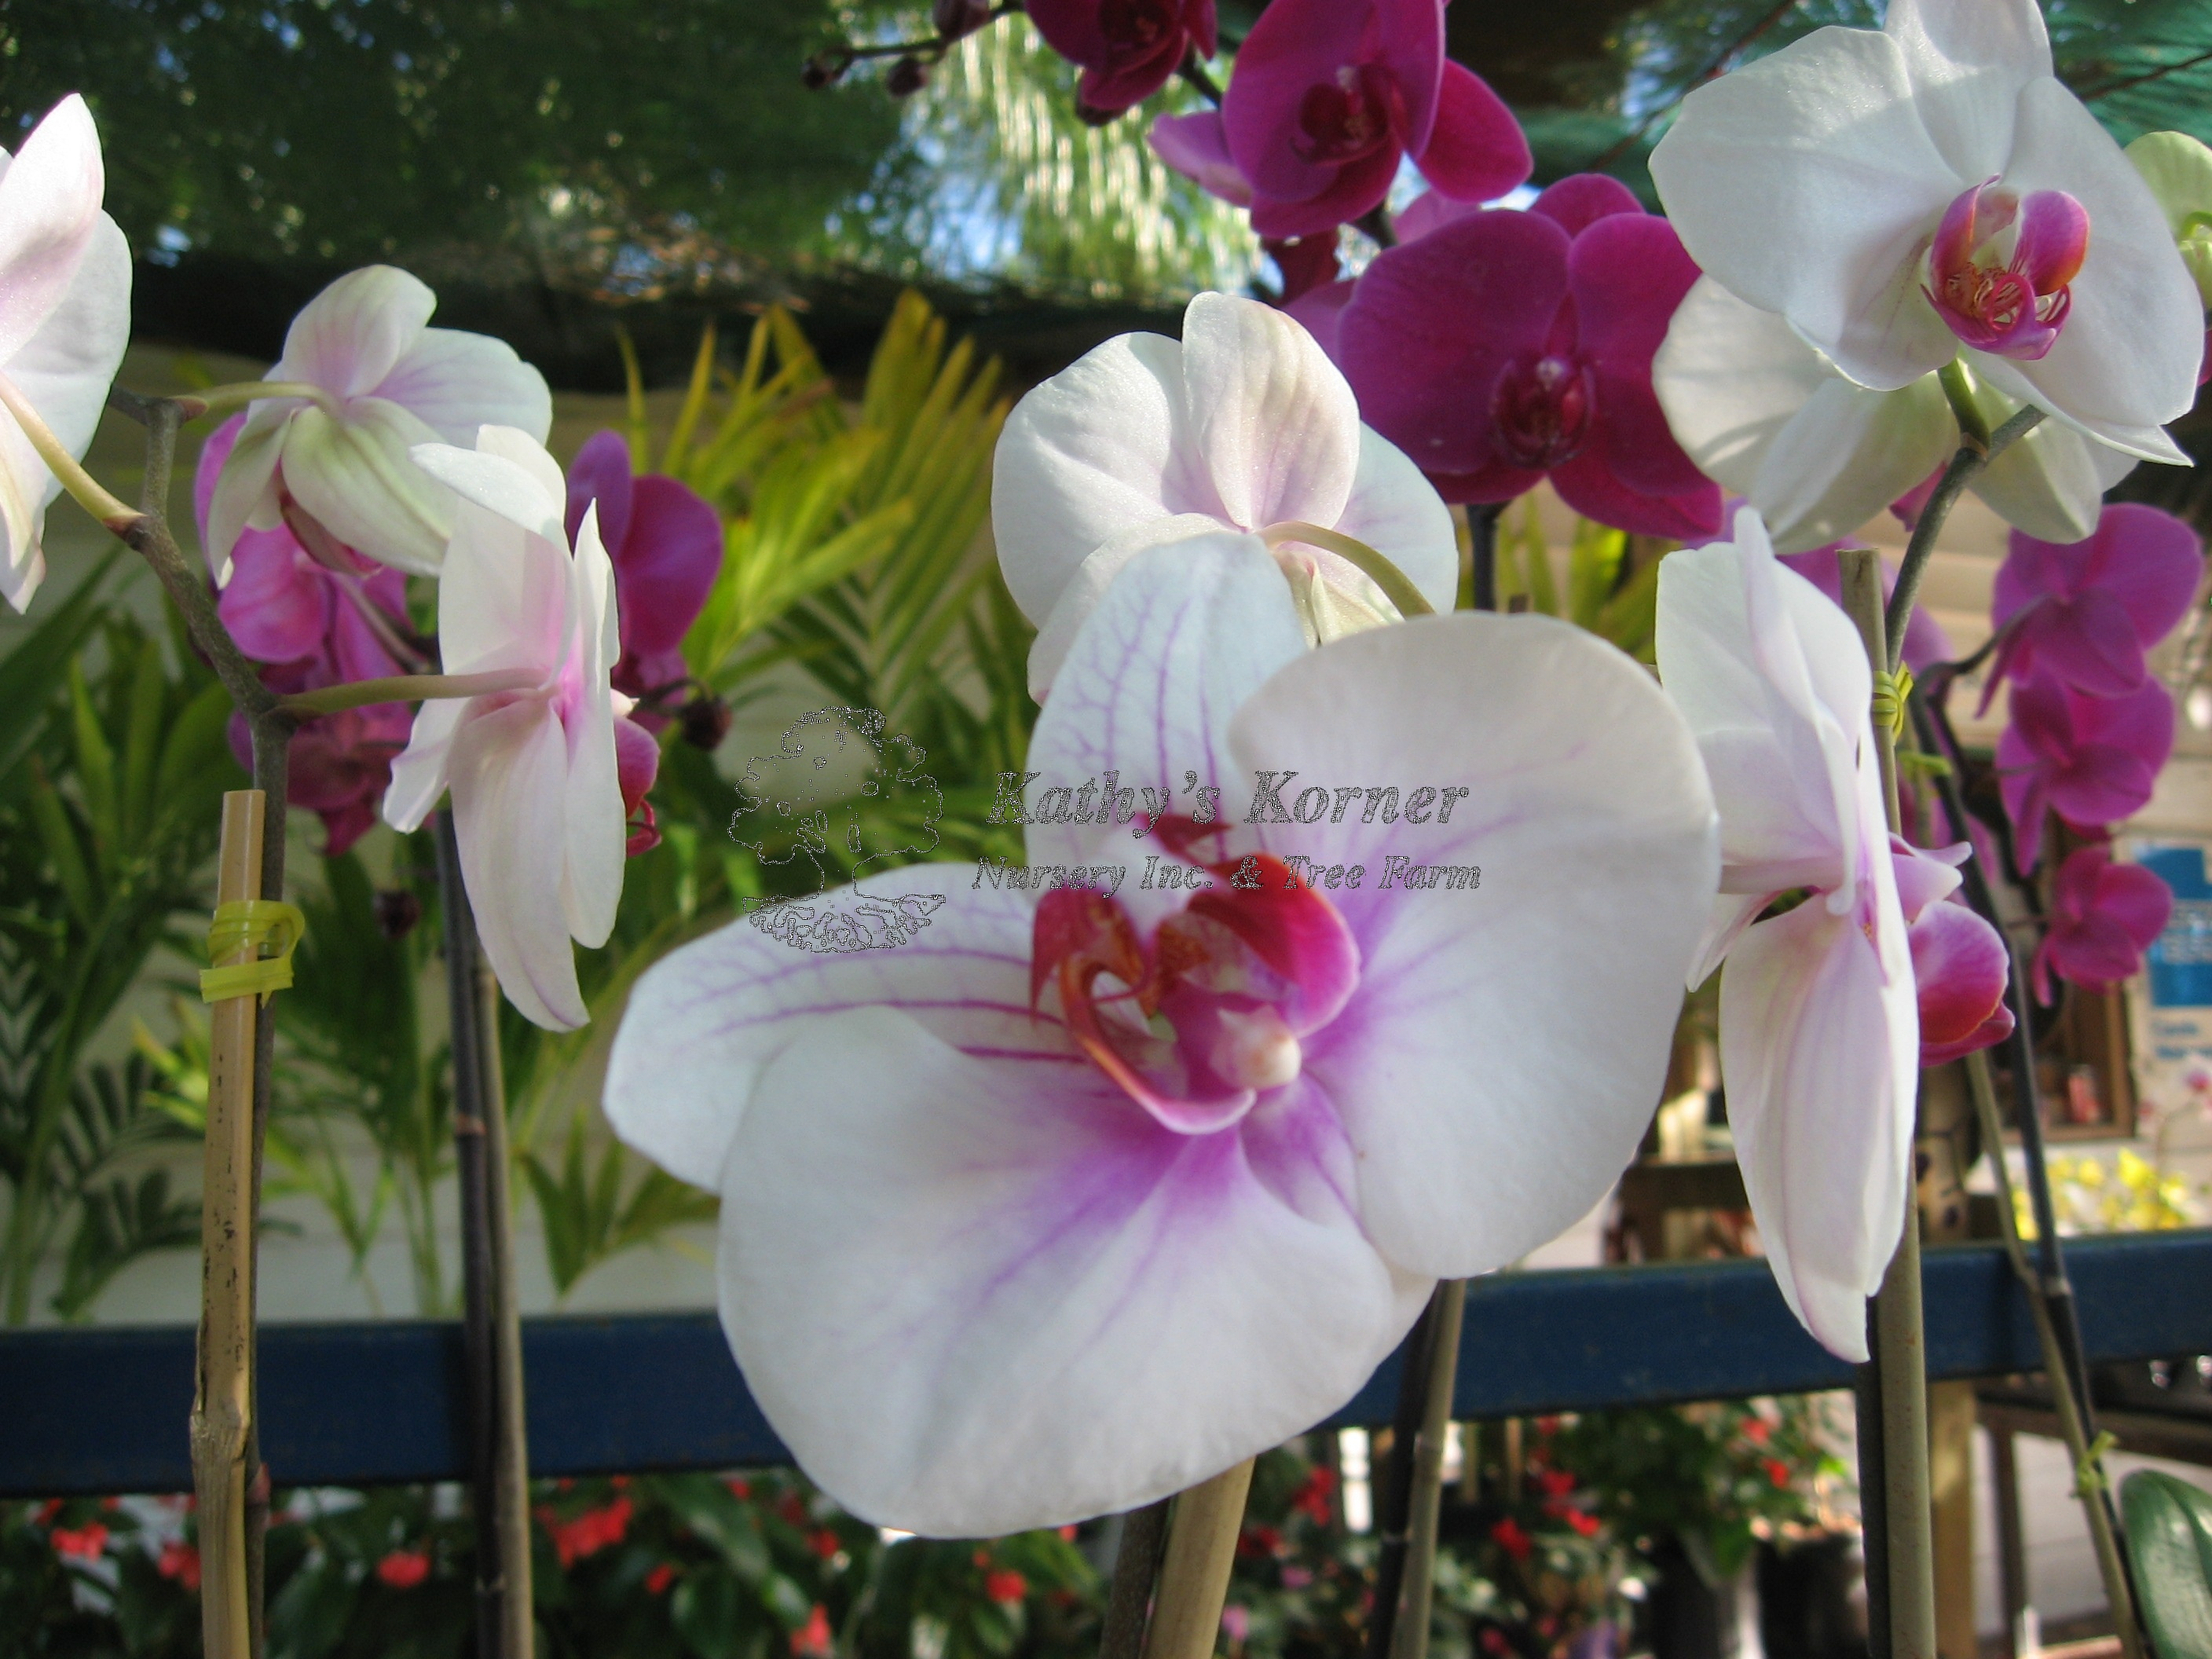 Orchid St. Petersburg - this is not a flower